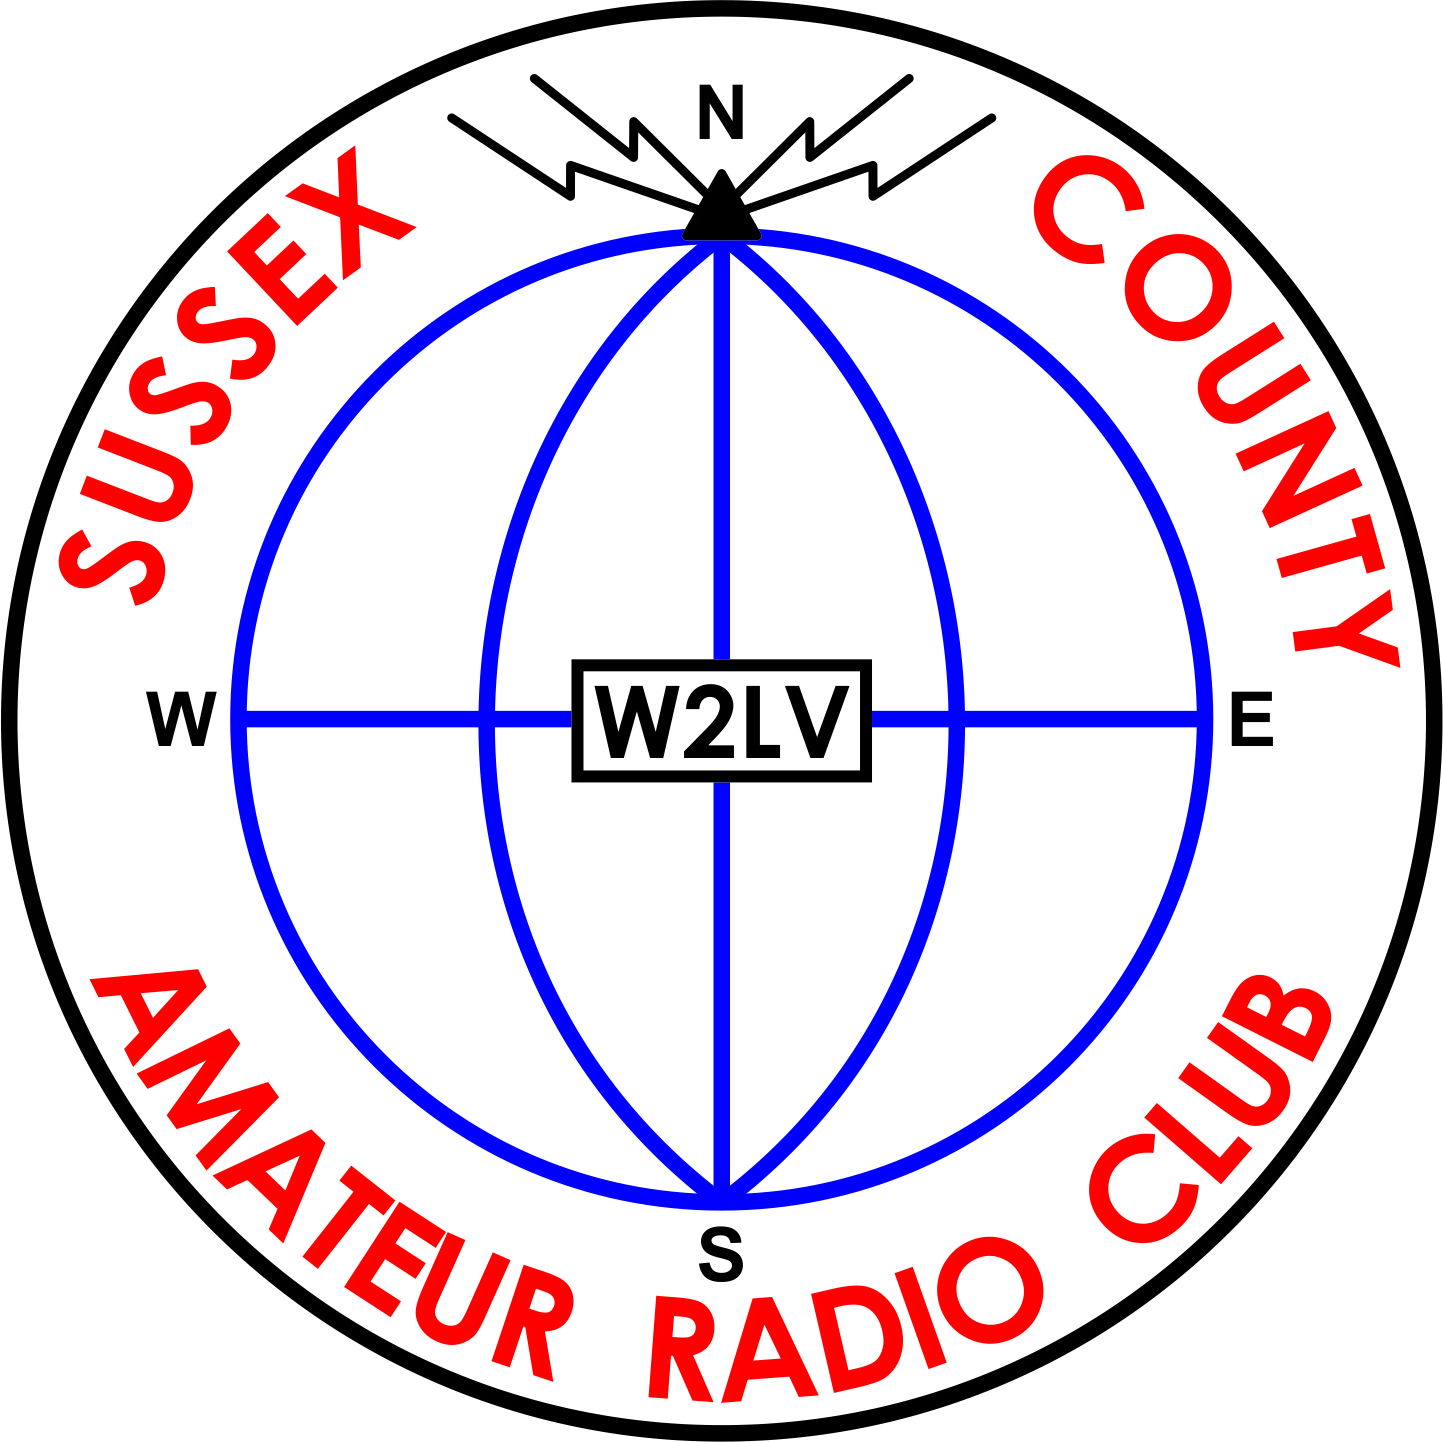 Consider, that Online amateur radio practice exams can